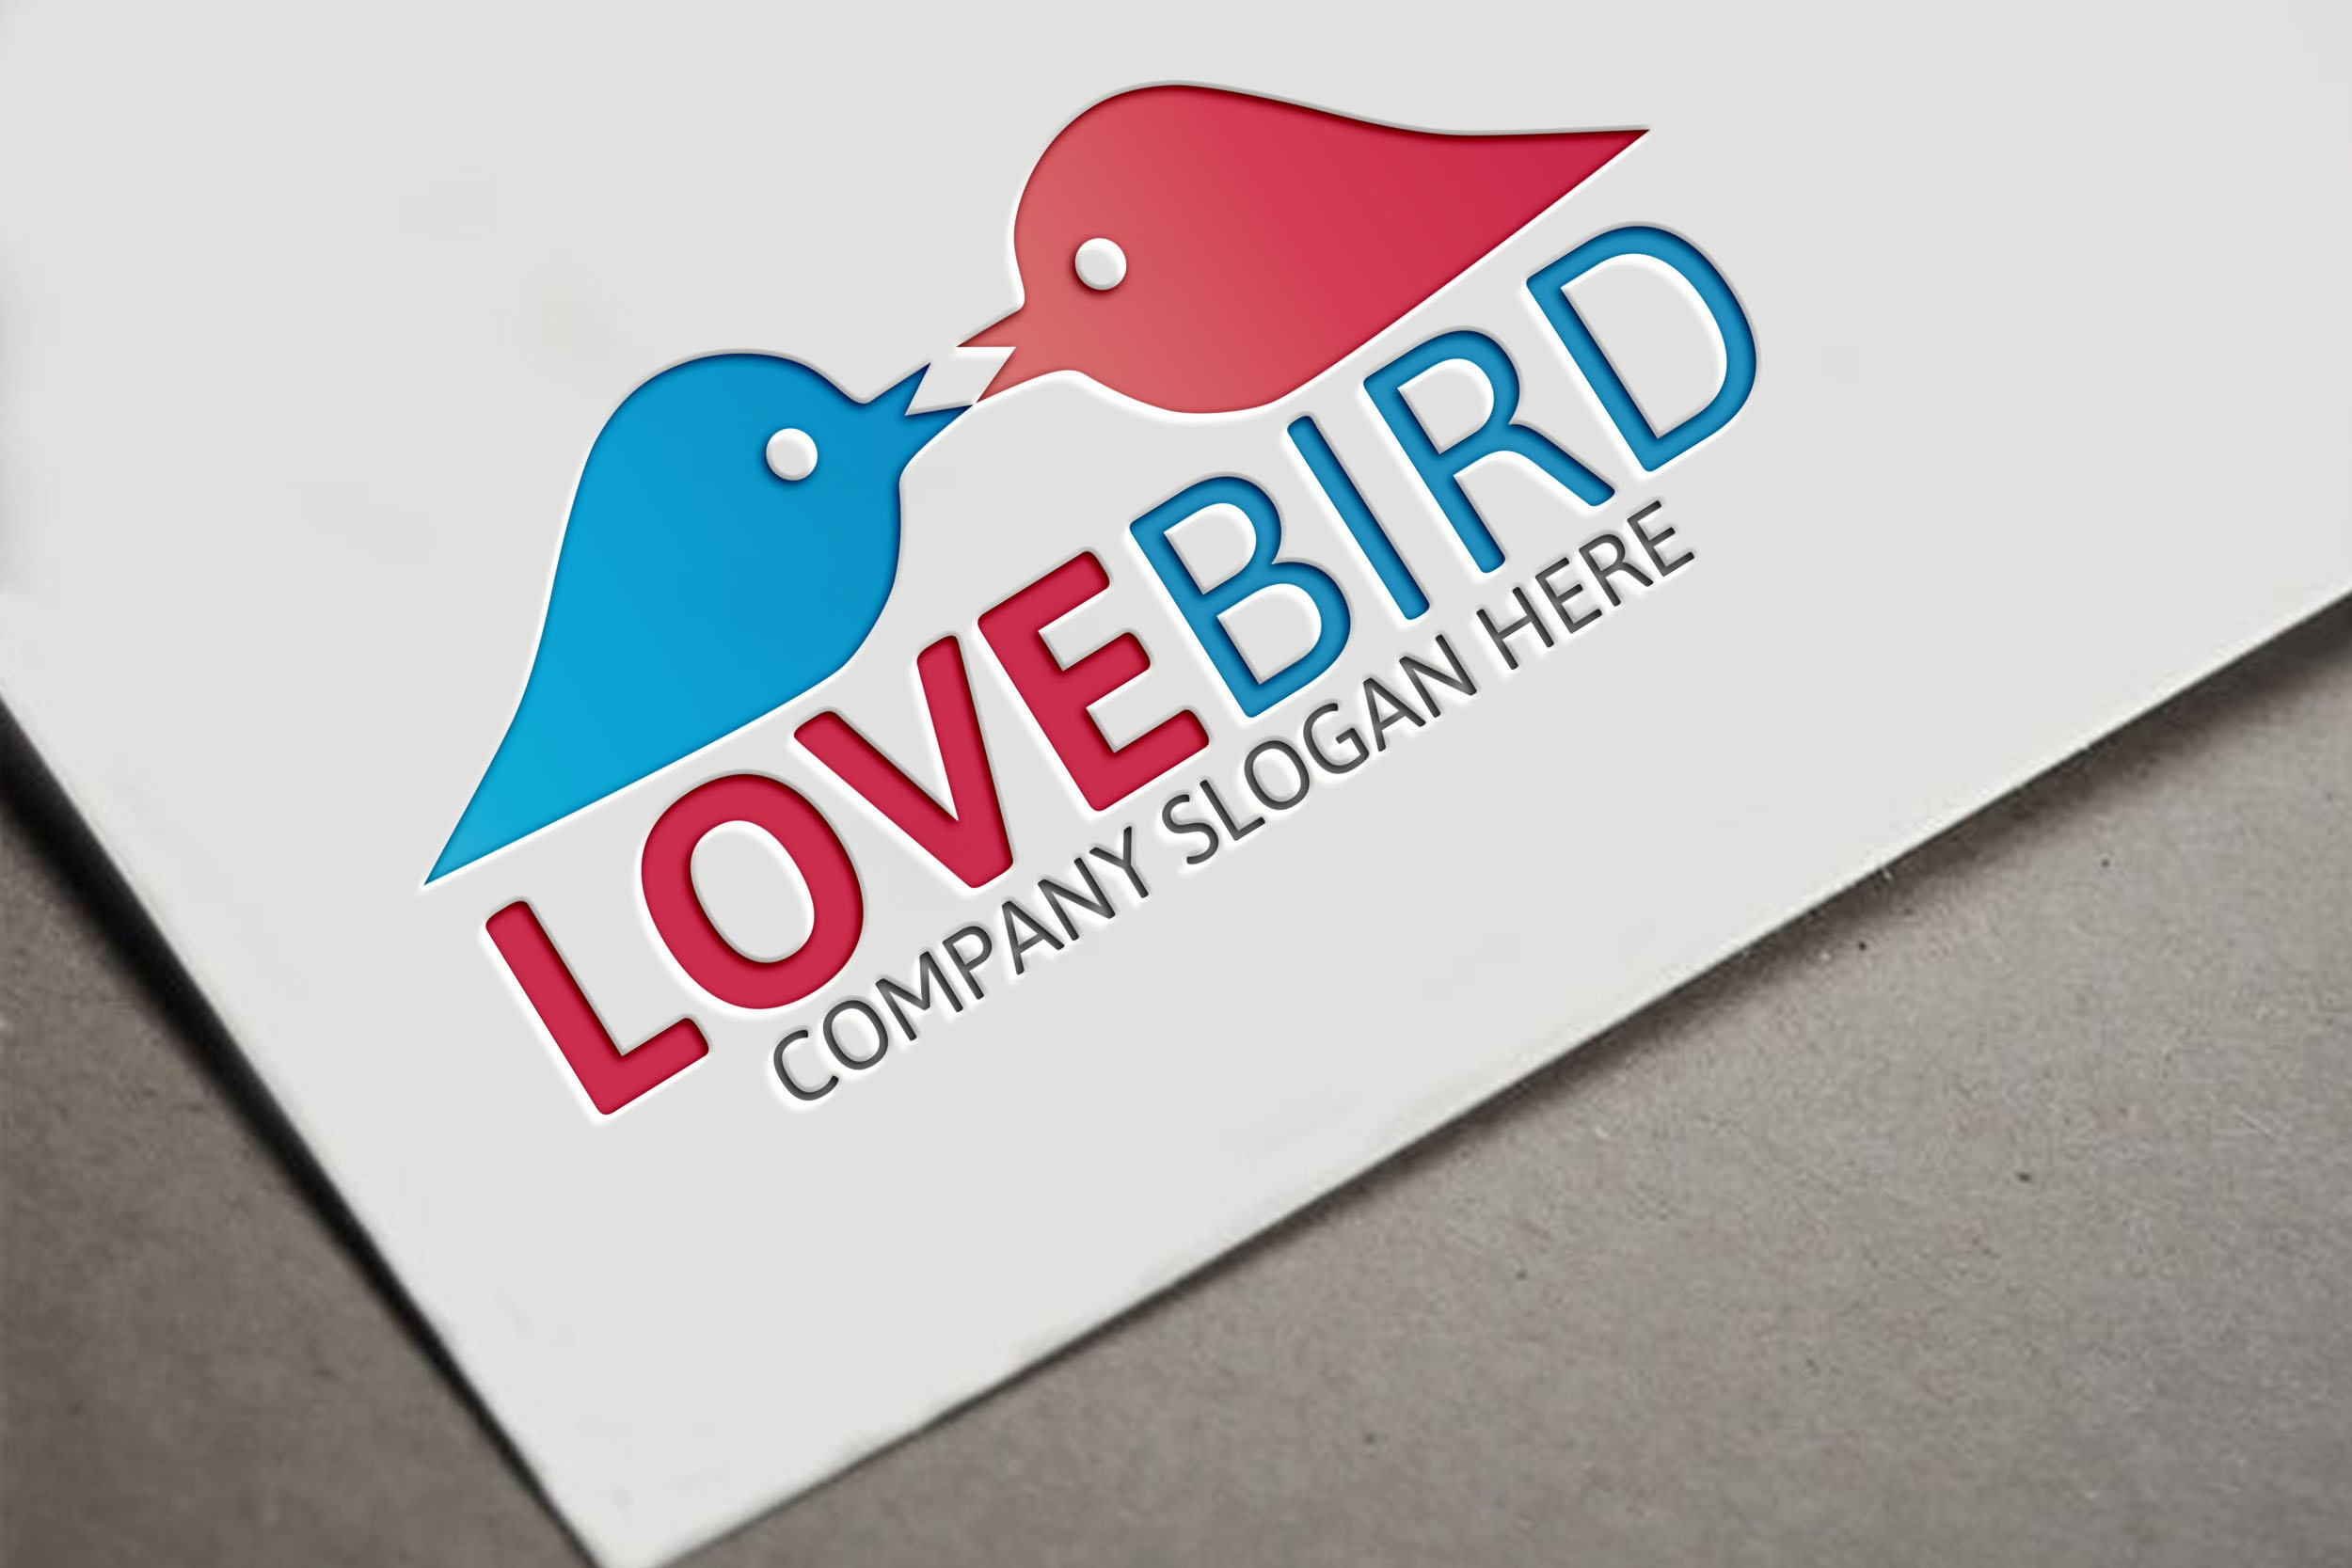 love bird logo creative illustrator templates creative market love bird logo